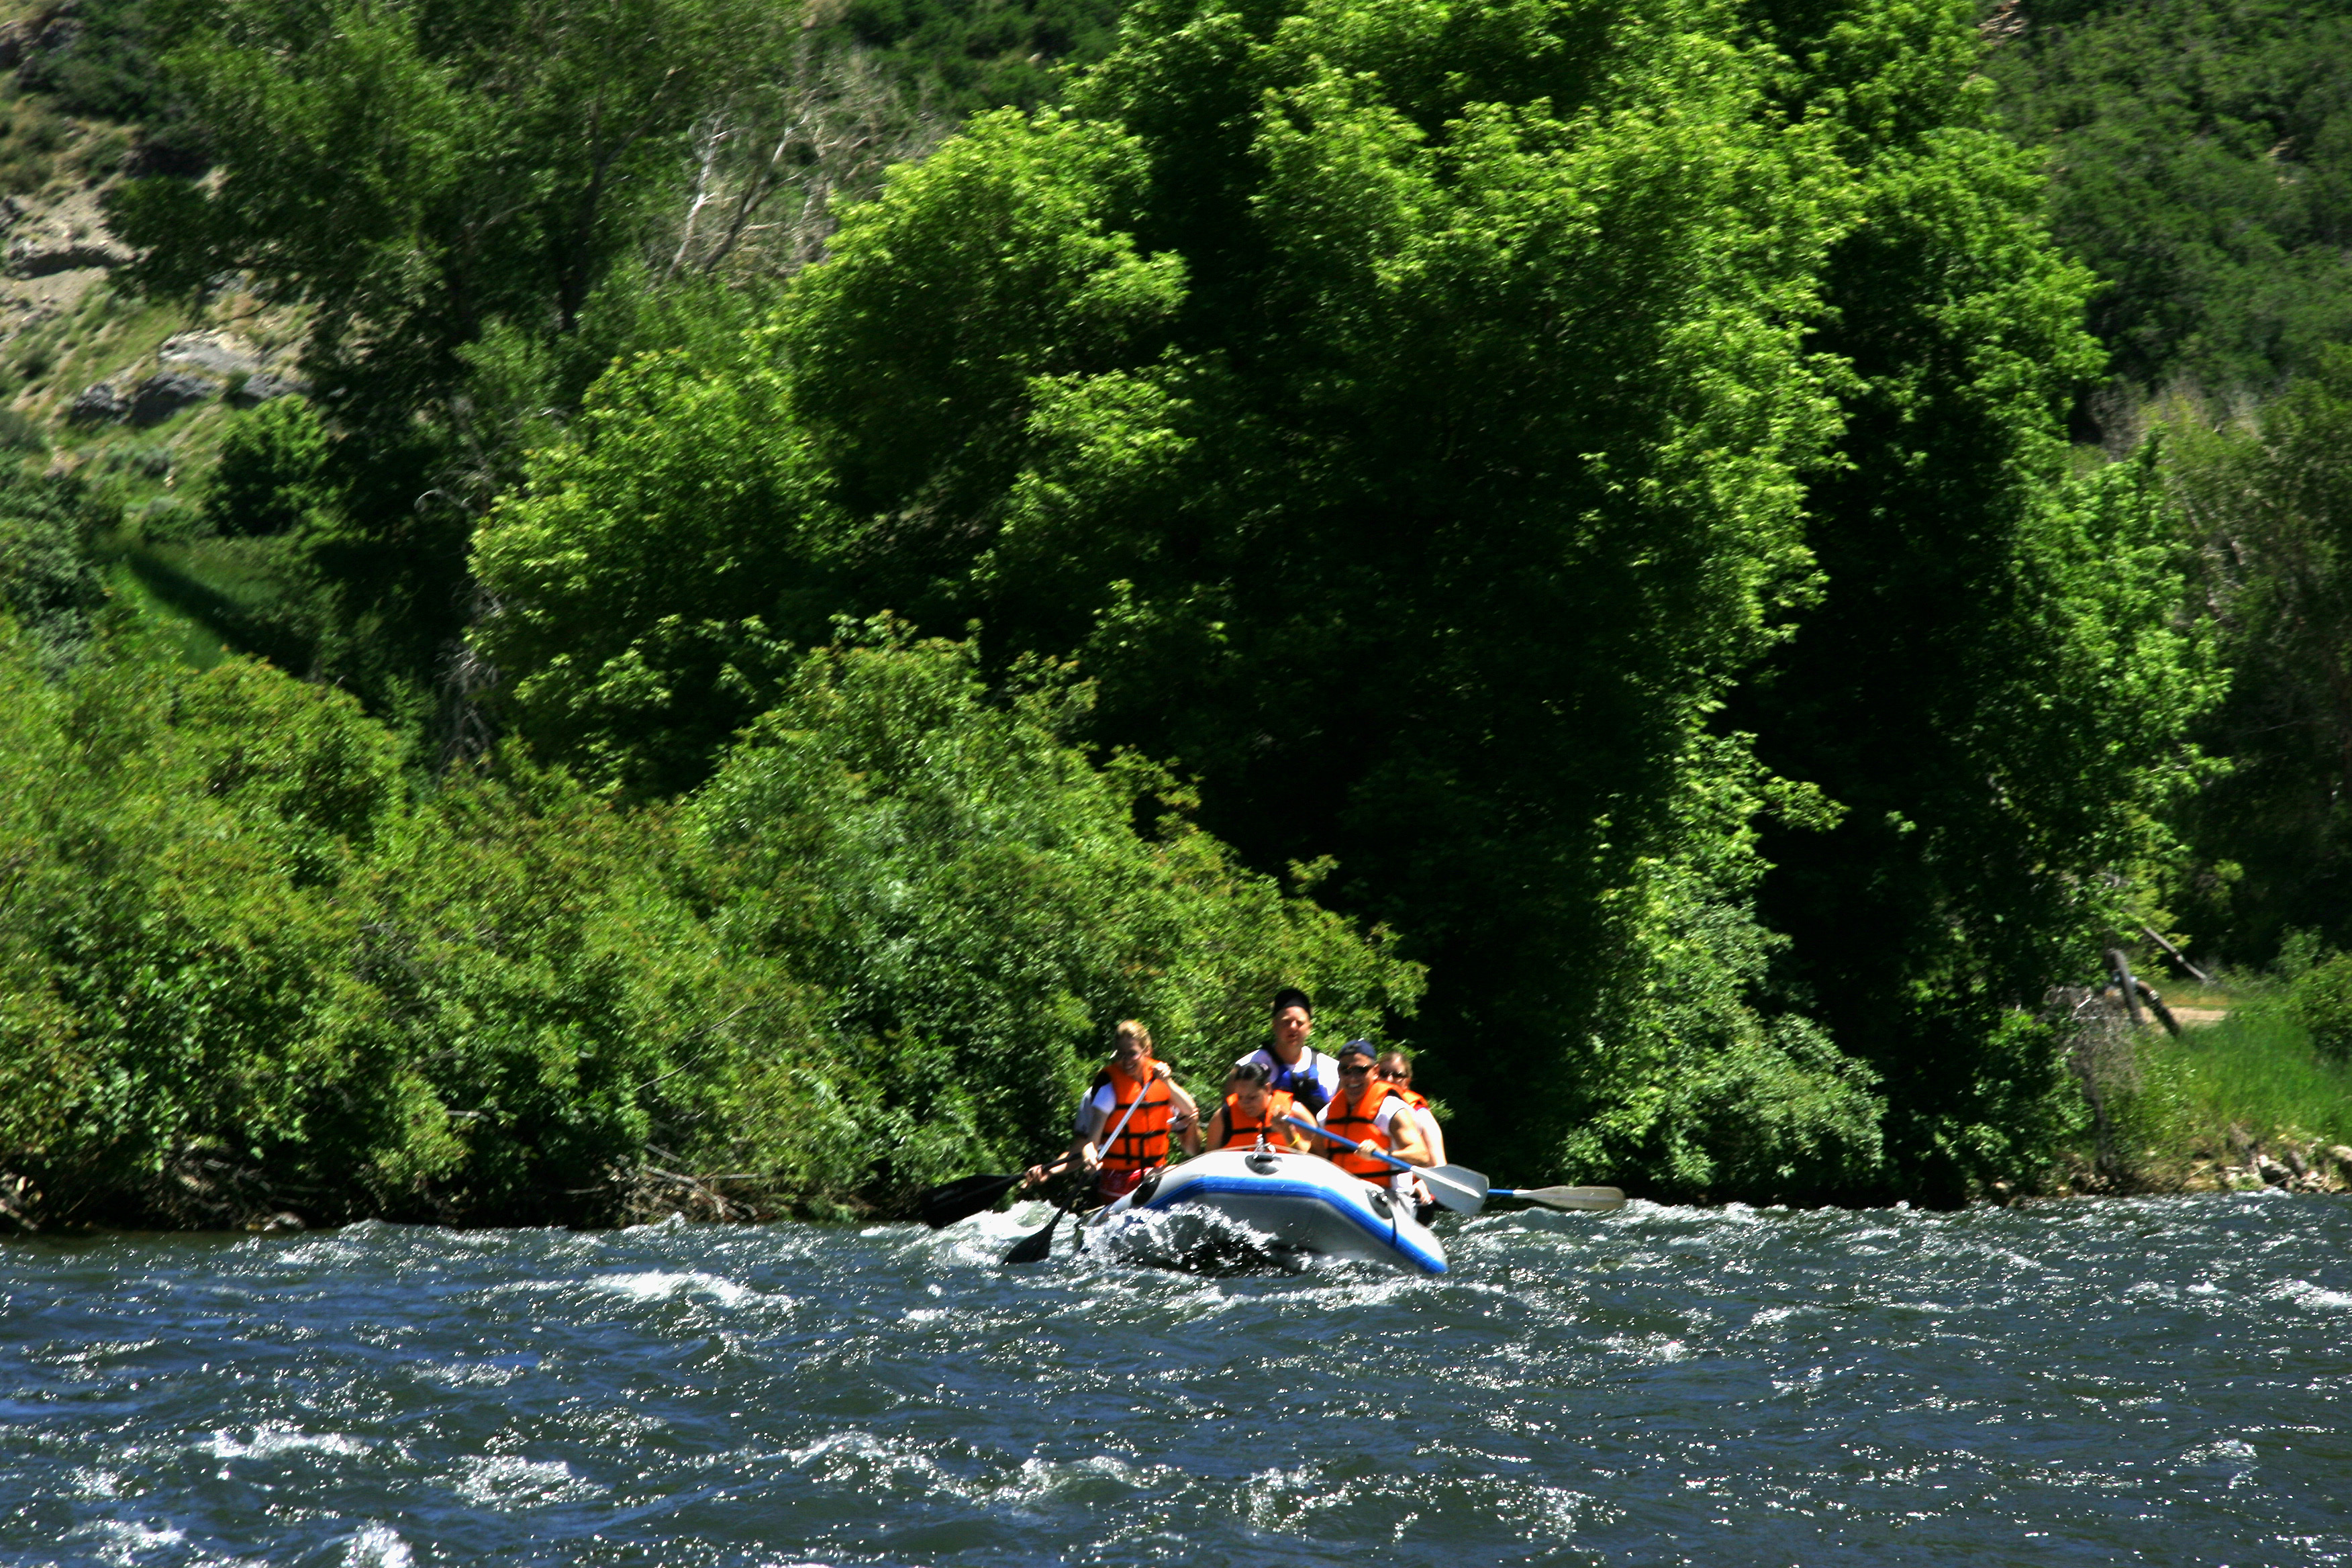 Rafting the Provo River